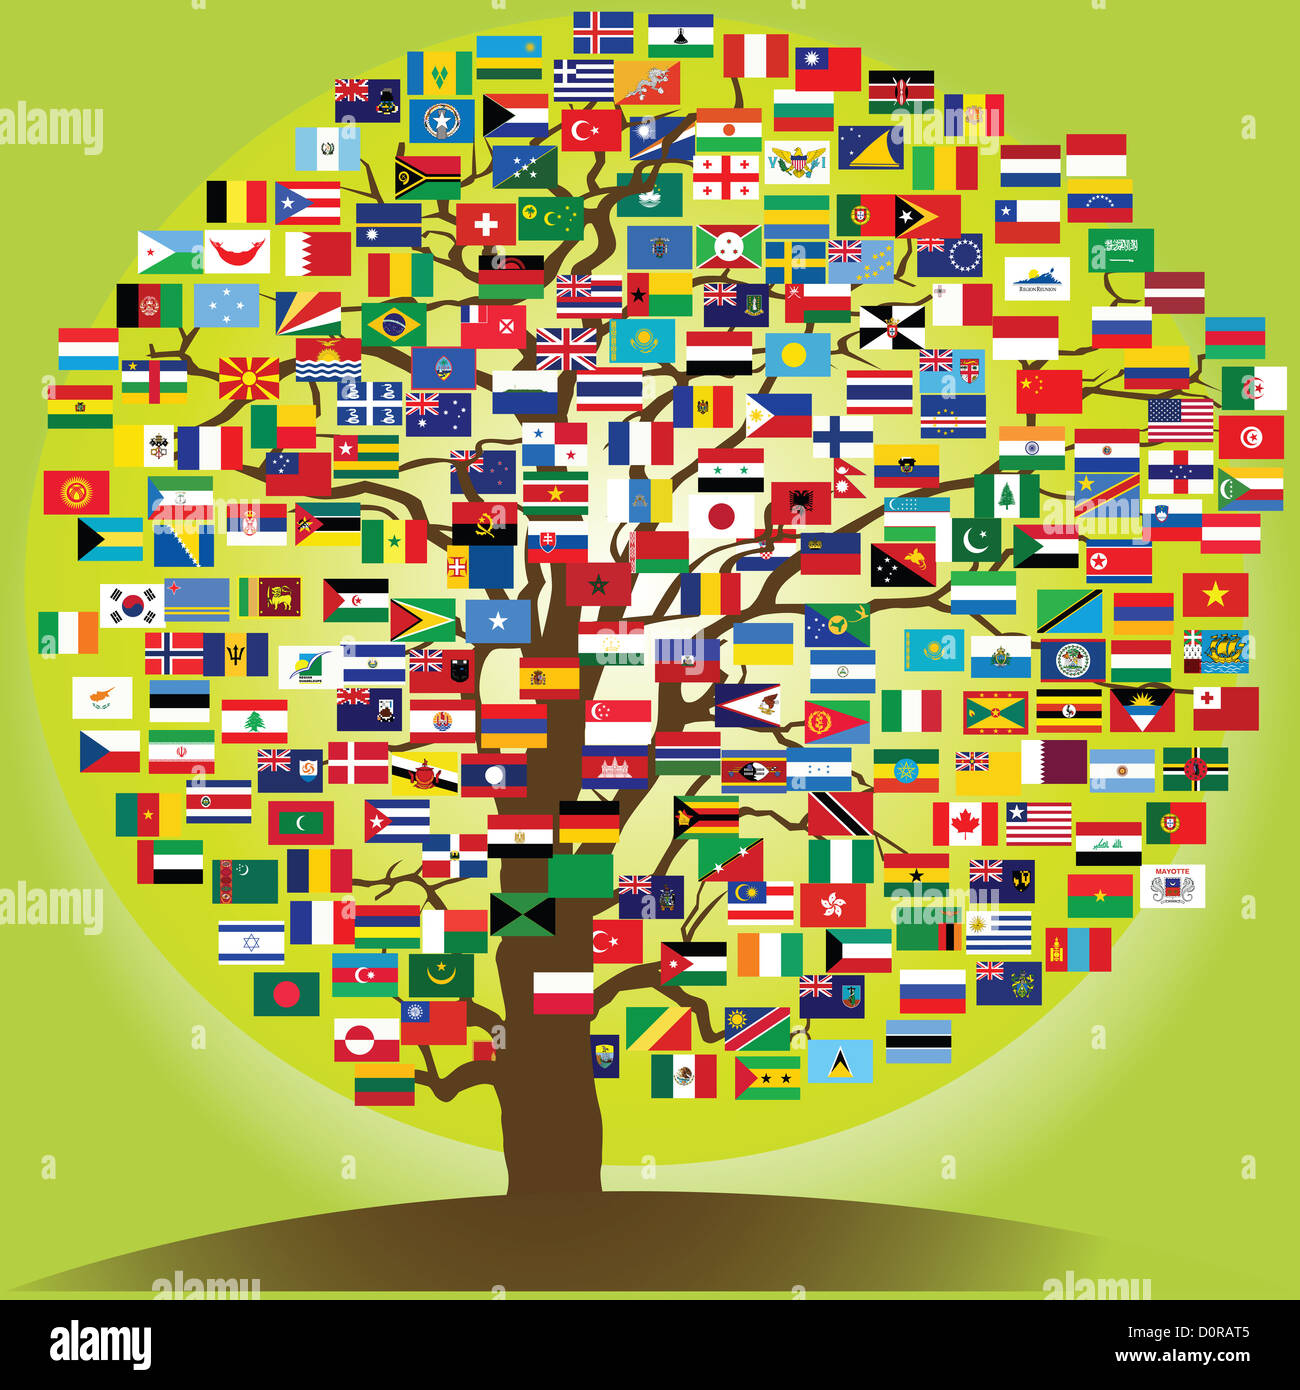 peace tree symbol of the frienship between nations - Stock Image